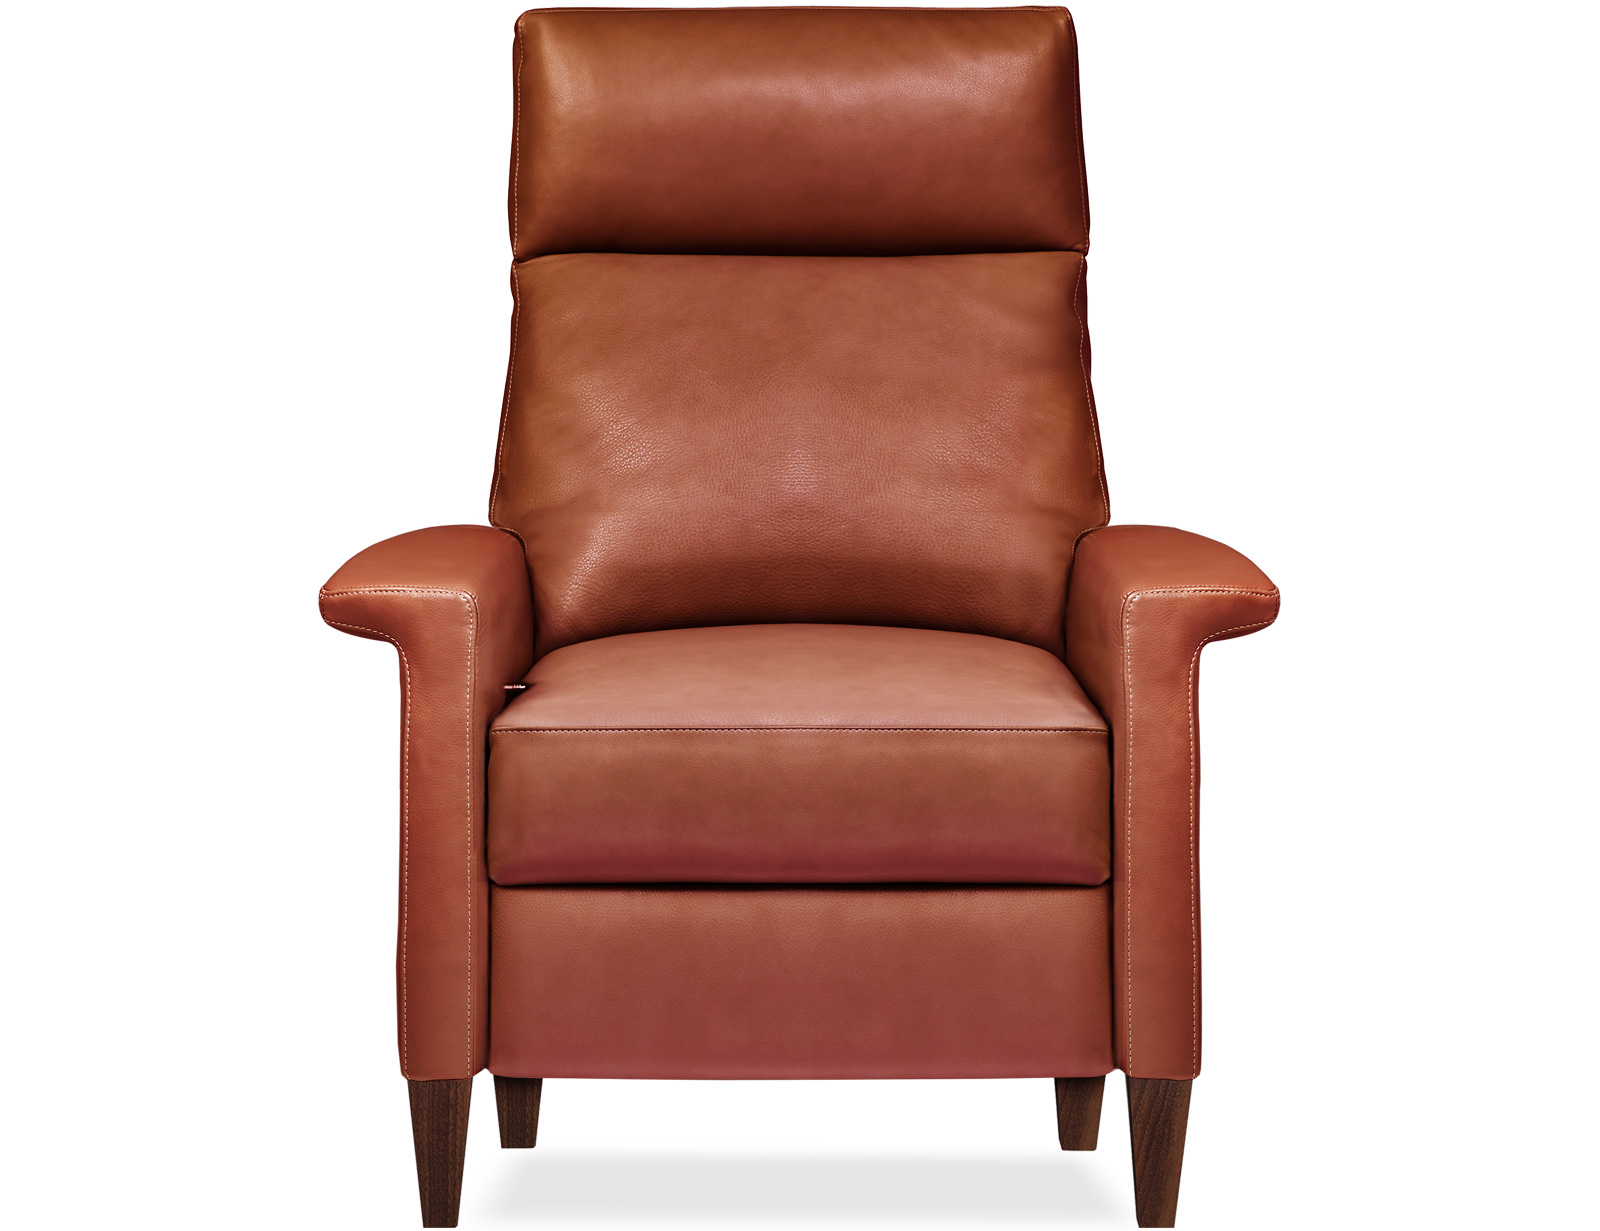 American Leather Felix Comfort Recliner--clean simple stylish  sc 1 st  Bedroom u0026 More & Bedroom u0026 More | American Leather Comfort Recliner | Felix | San ... islam-shia.org